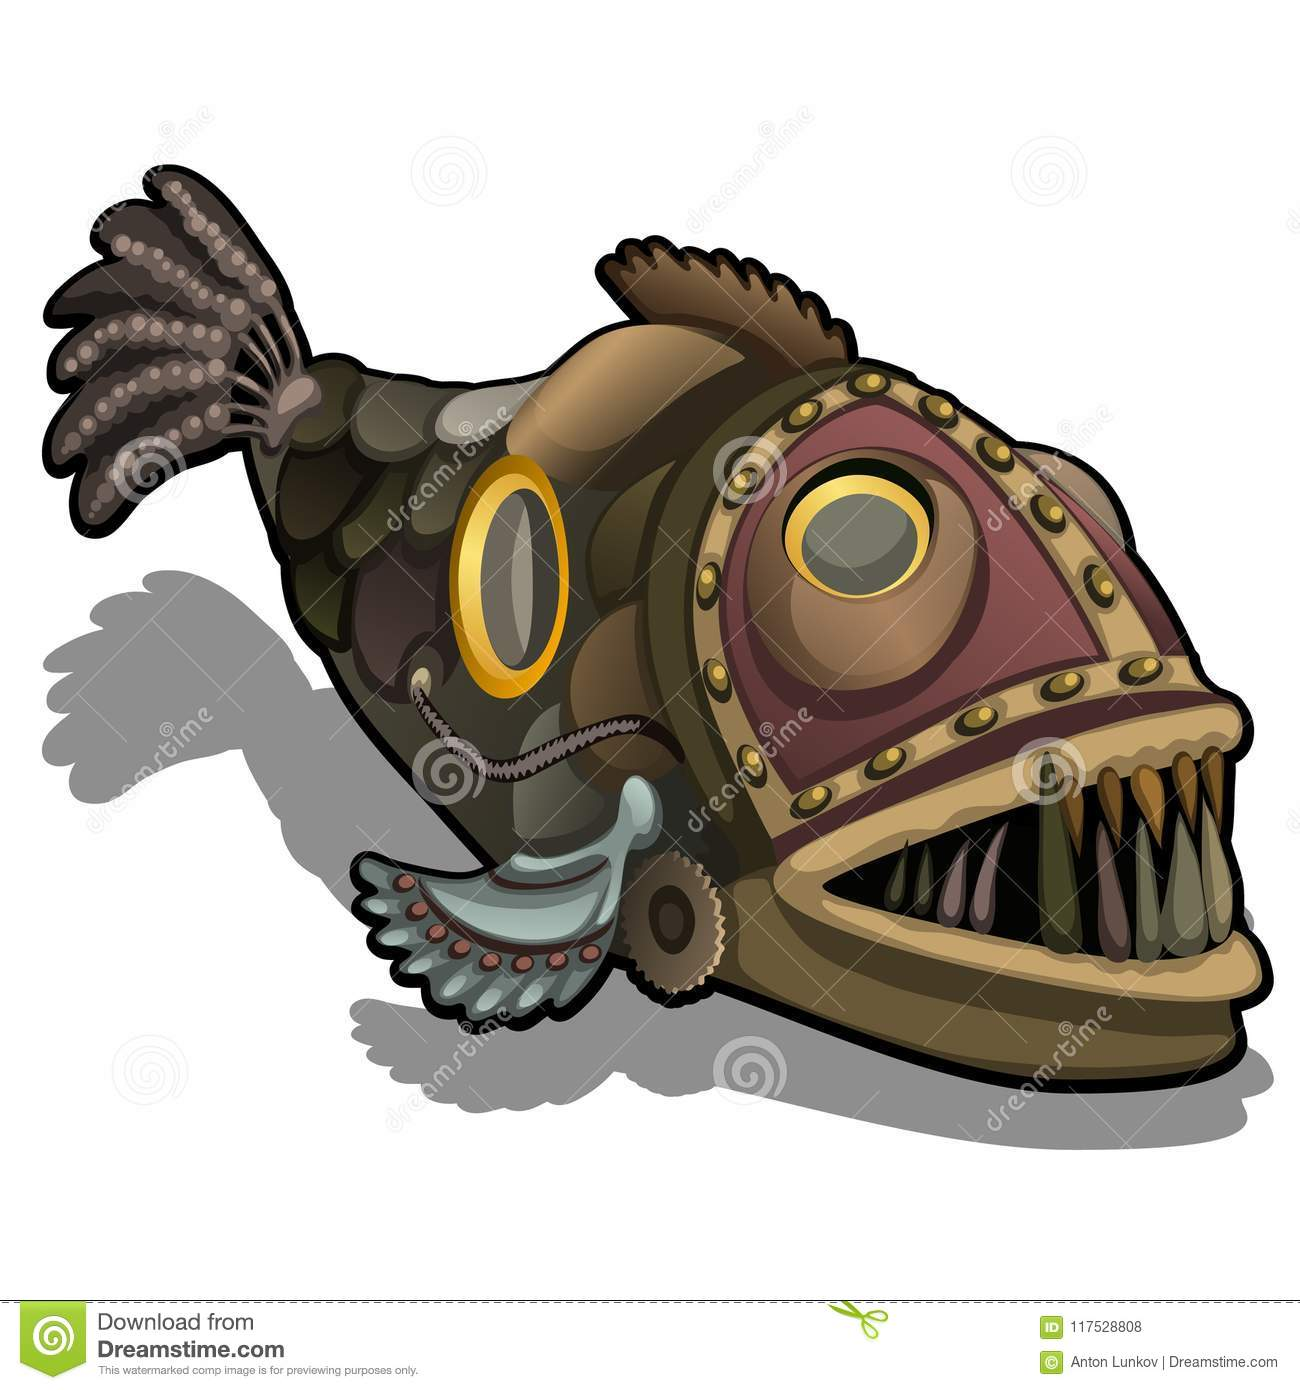 Fangtooth fish in the style of steam punk isolated on white background. Cartoon vector close-up illustration.